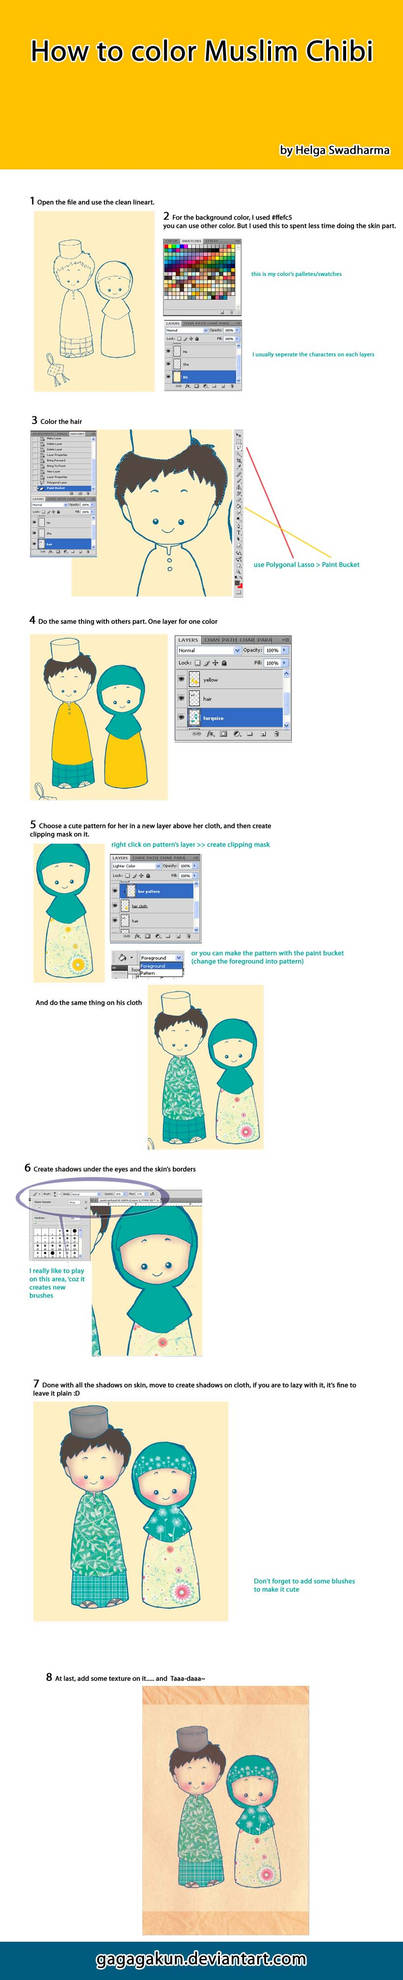 how to color Muslim Chibi